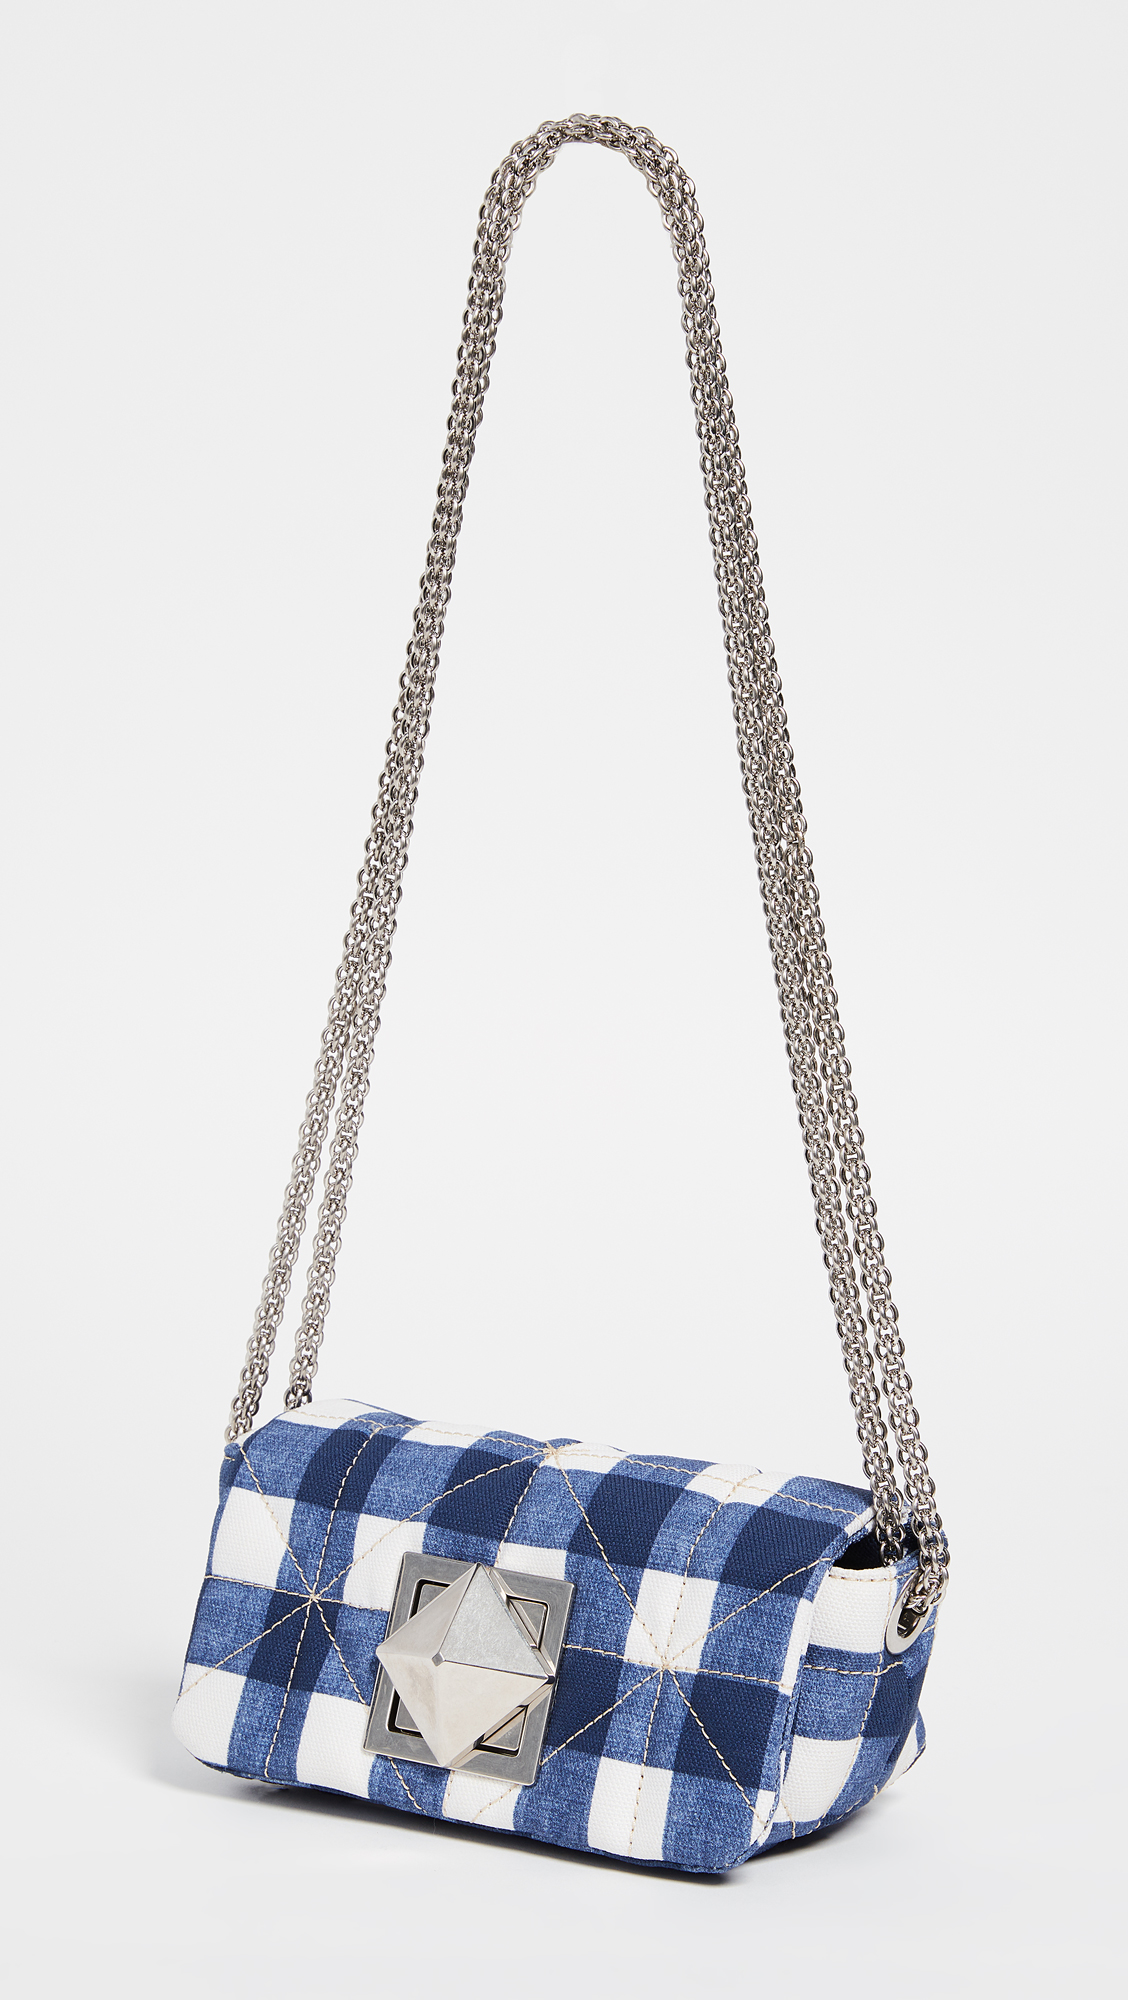 dddfb8a732 Sonia Rykiel Quilted Cross Body Bag